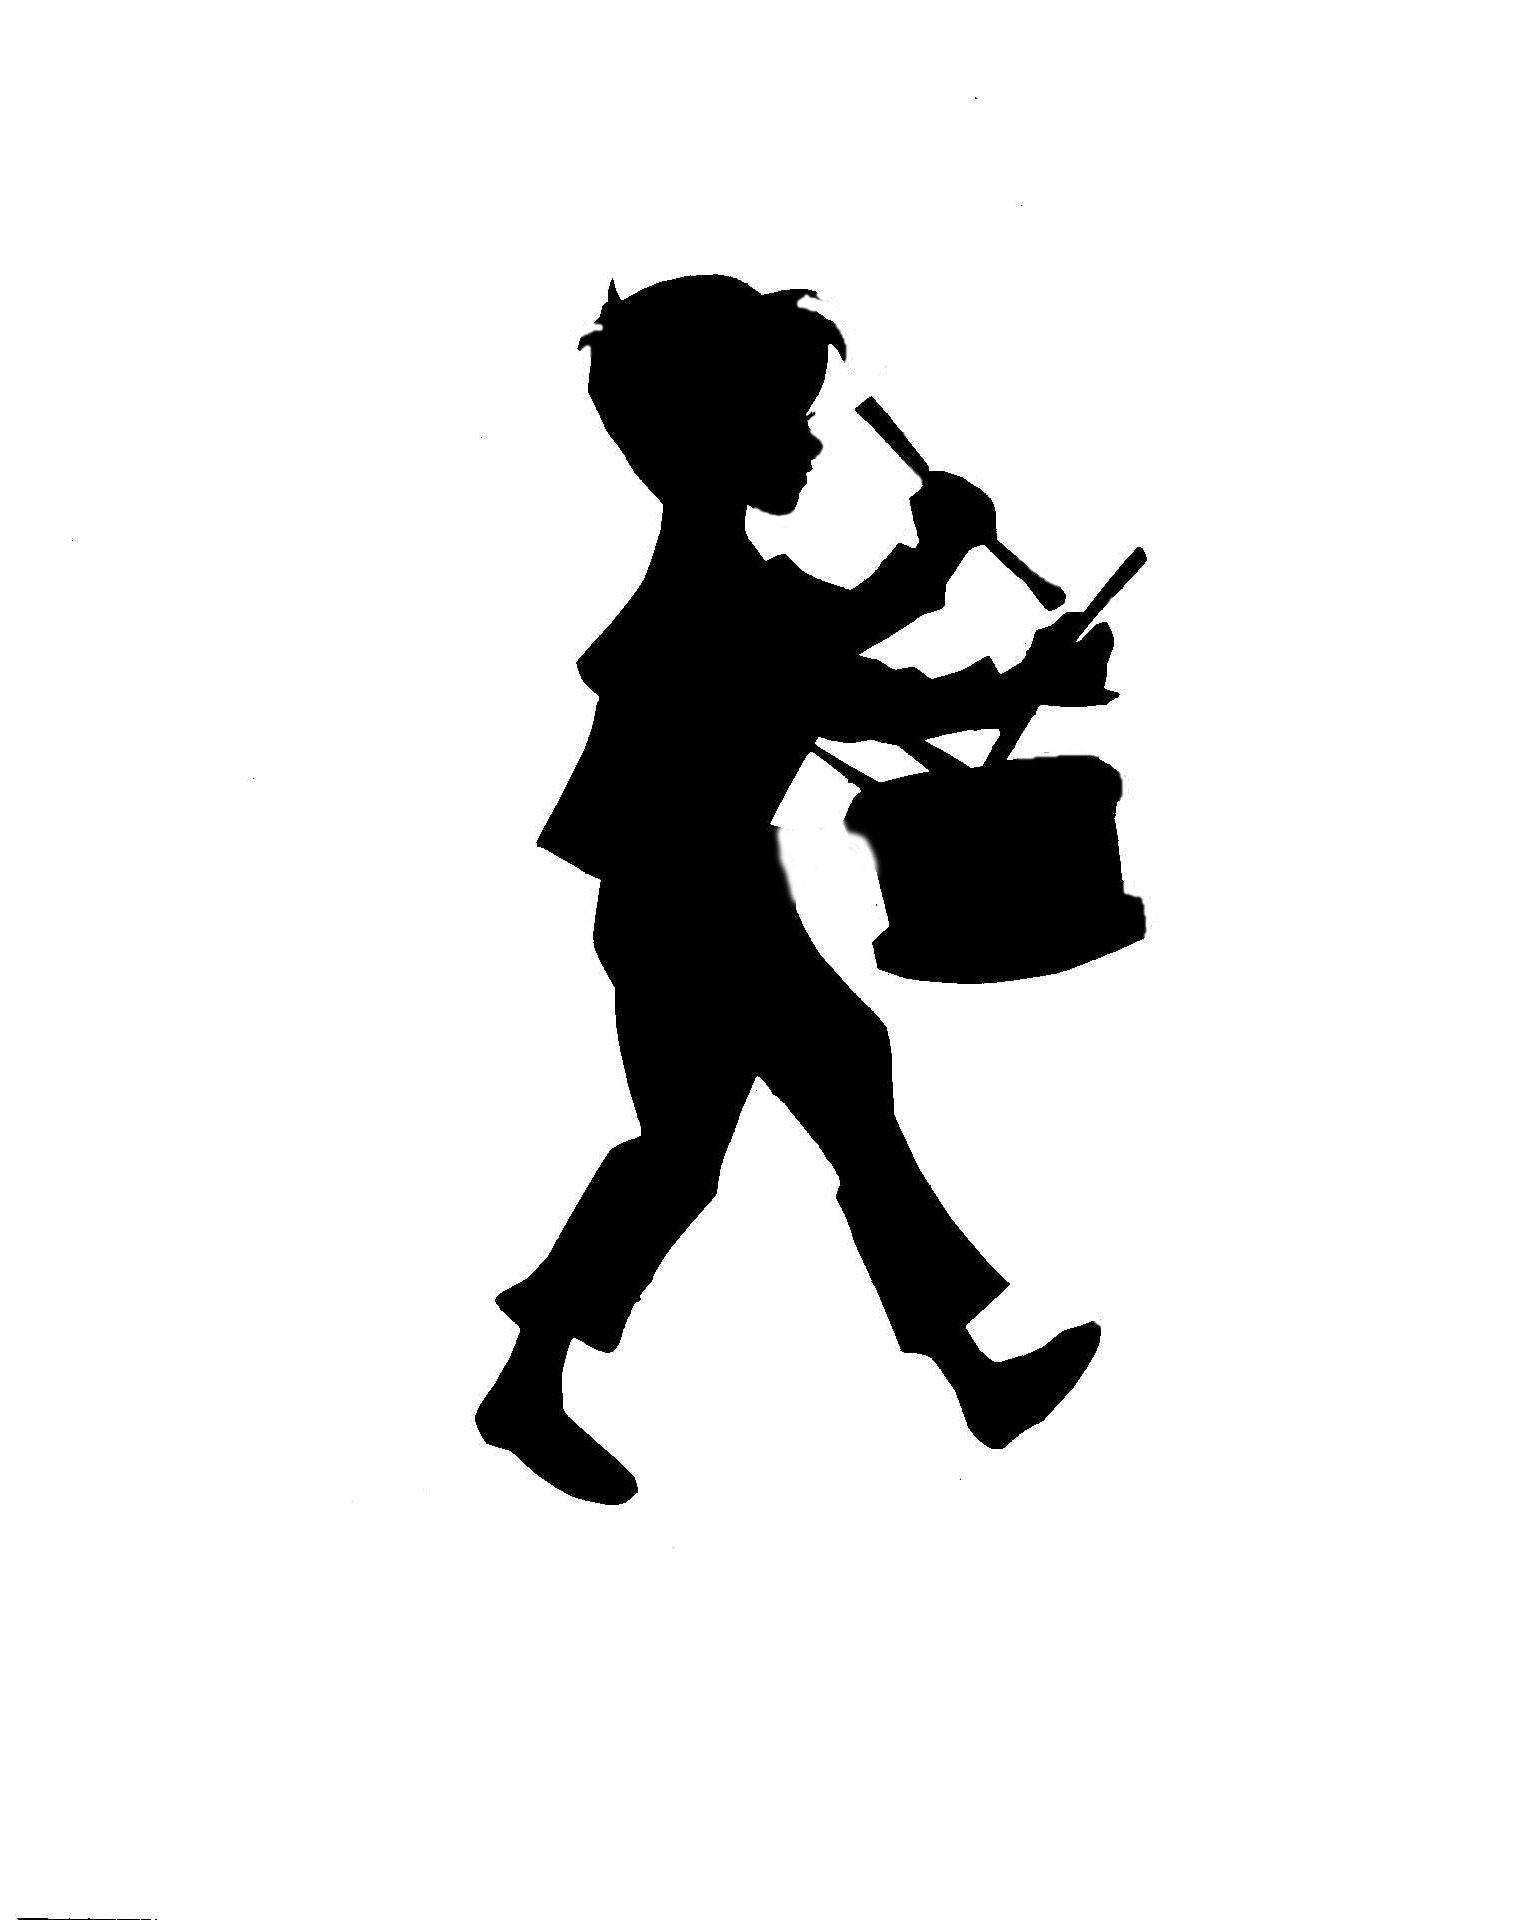 Little Boy With A Frog Silhouette One Of My Earliest Decorative